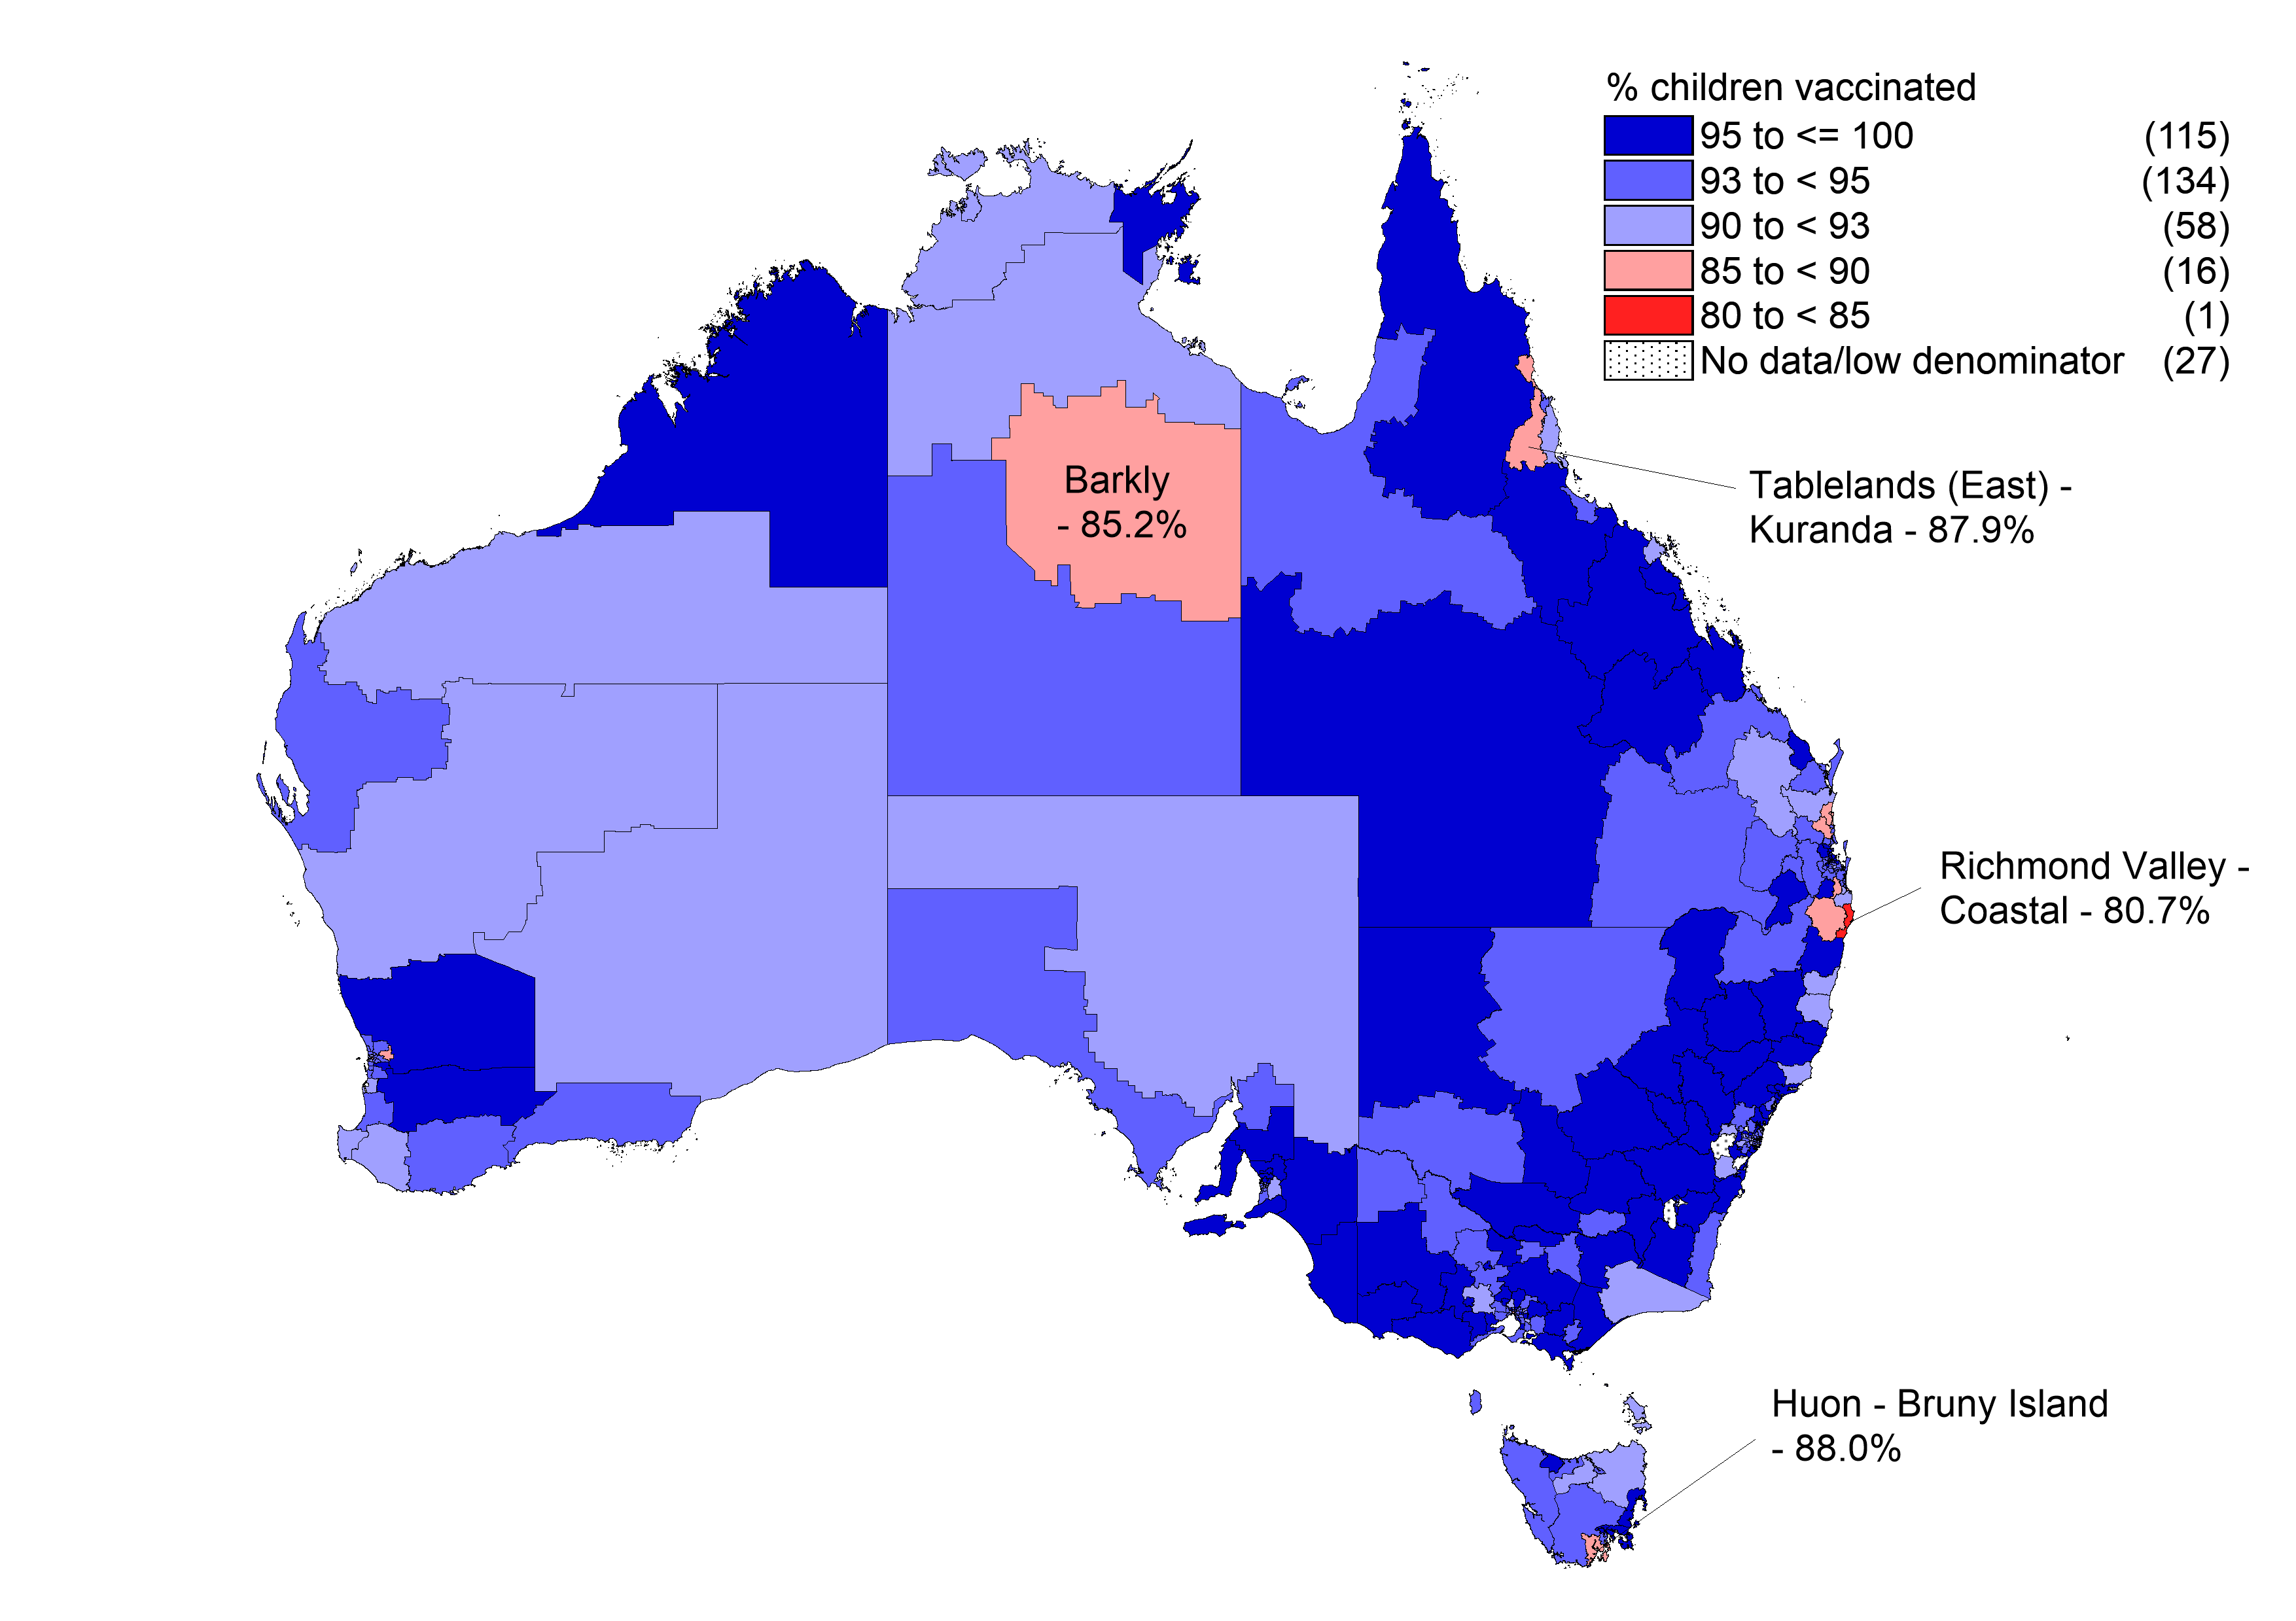 Pneumococcal conjugate (13vPCV) vaccine coverage at 12 months of age (3 doses) by Statistical Area 3, Australia and major capital cities, 2017